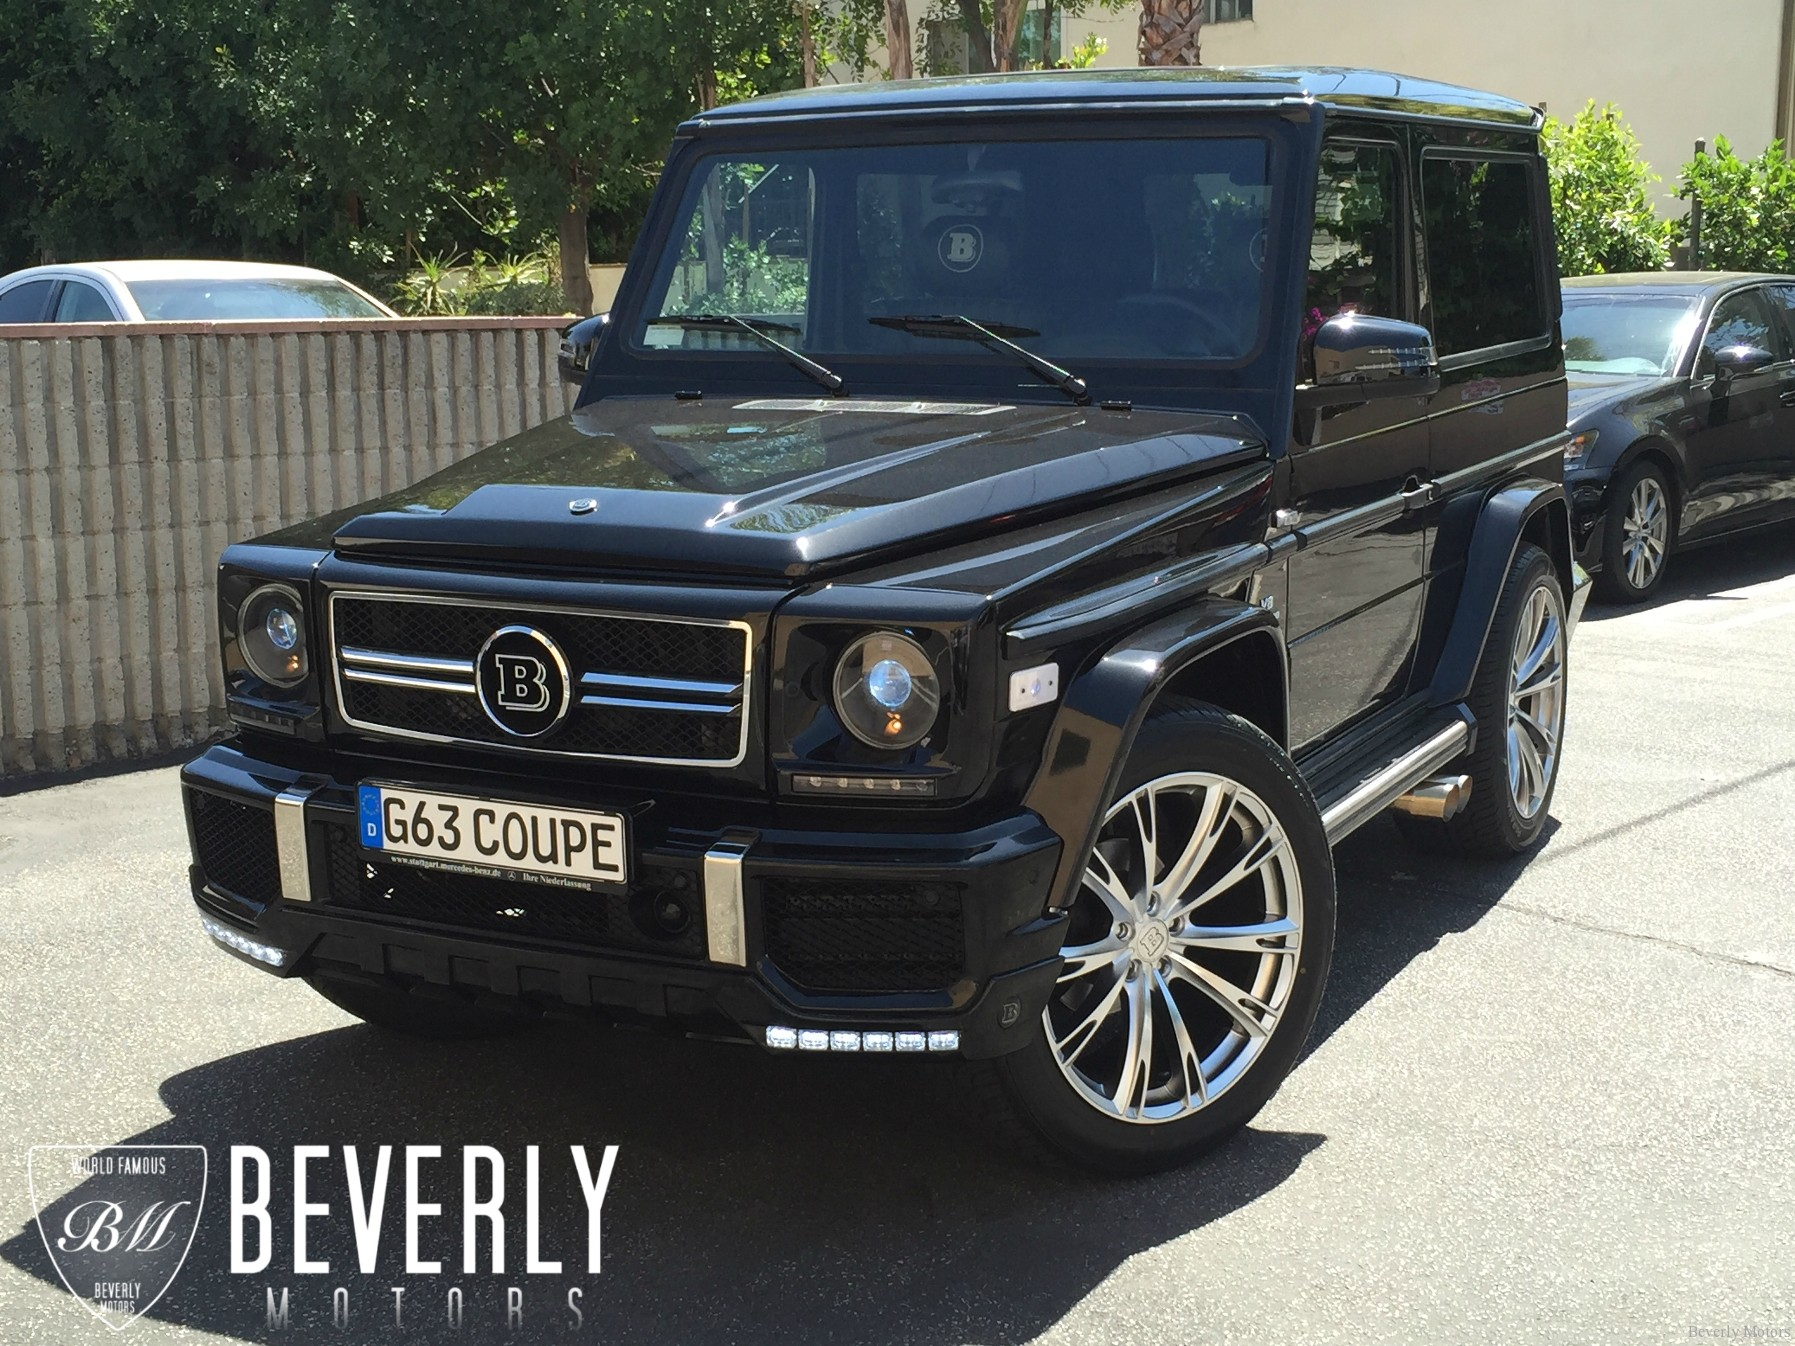 2001 mercedes benz g320 coupe brabus for sale beverly for Mercedes benz g class brabus